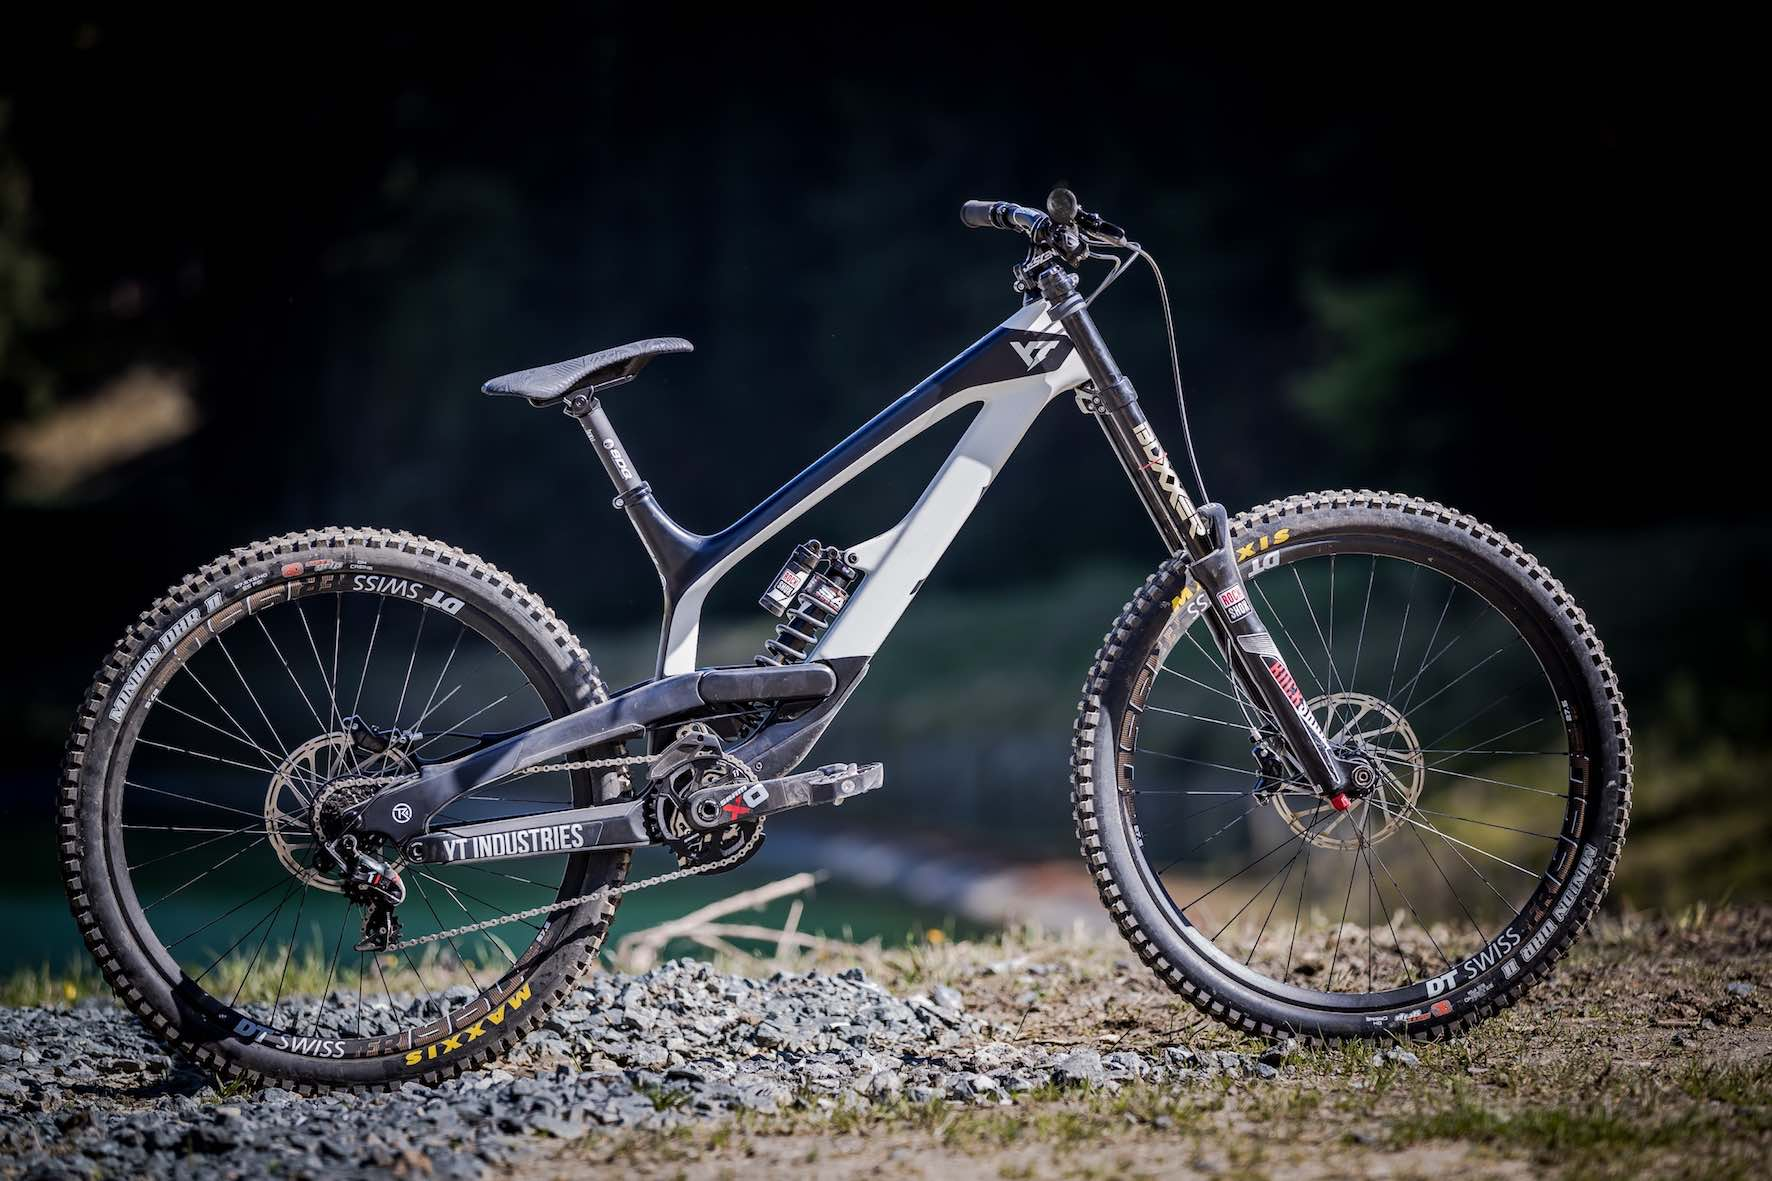 The new 2018 YT Industries TUES is available now